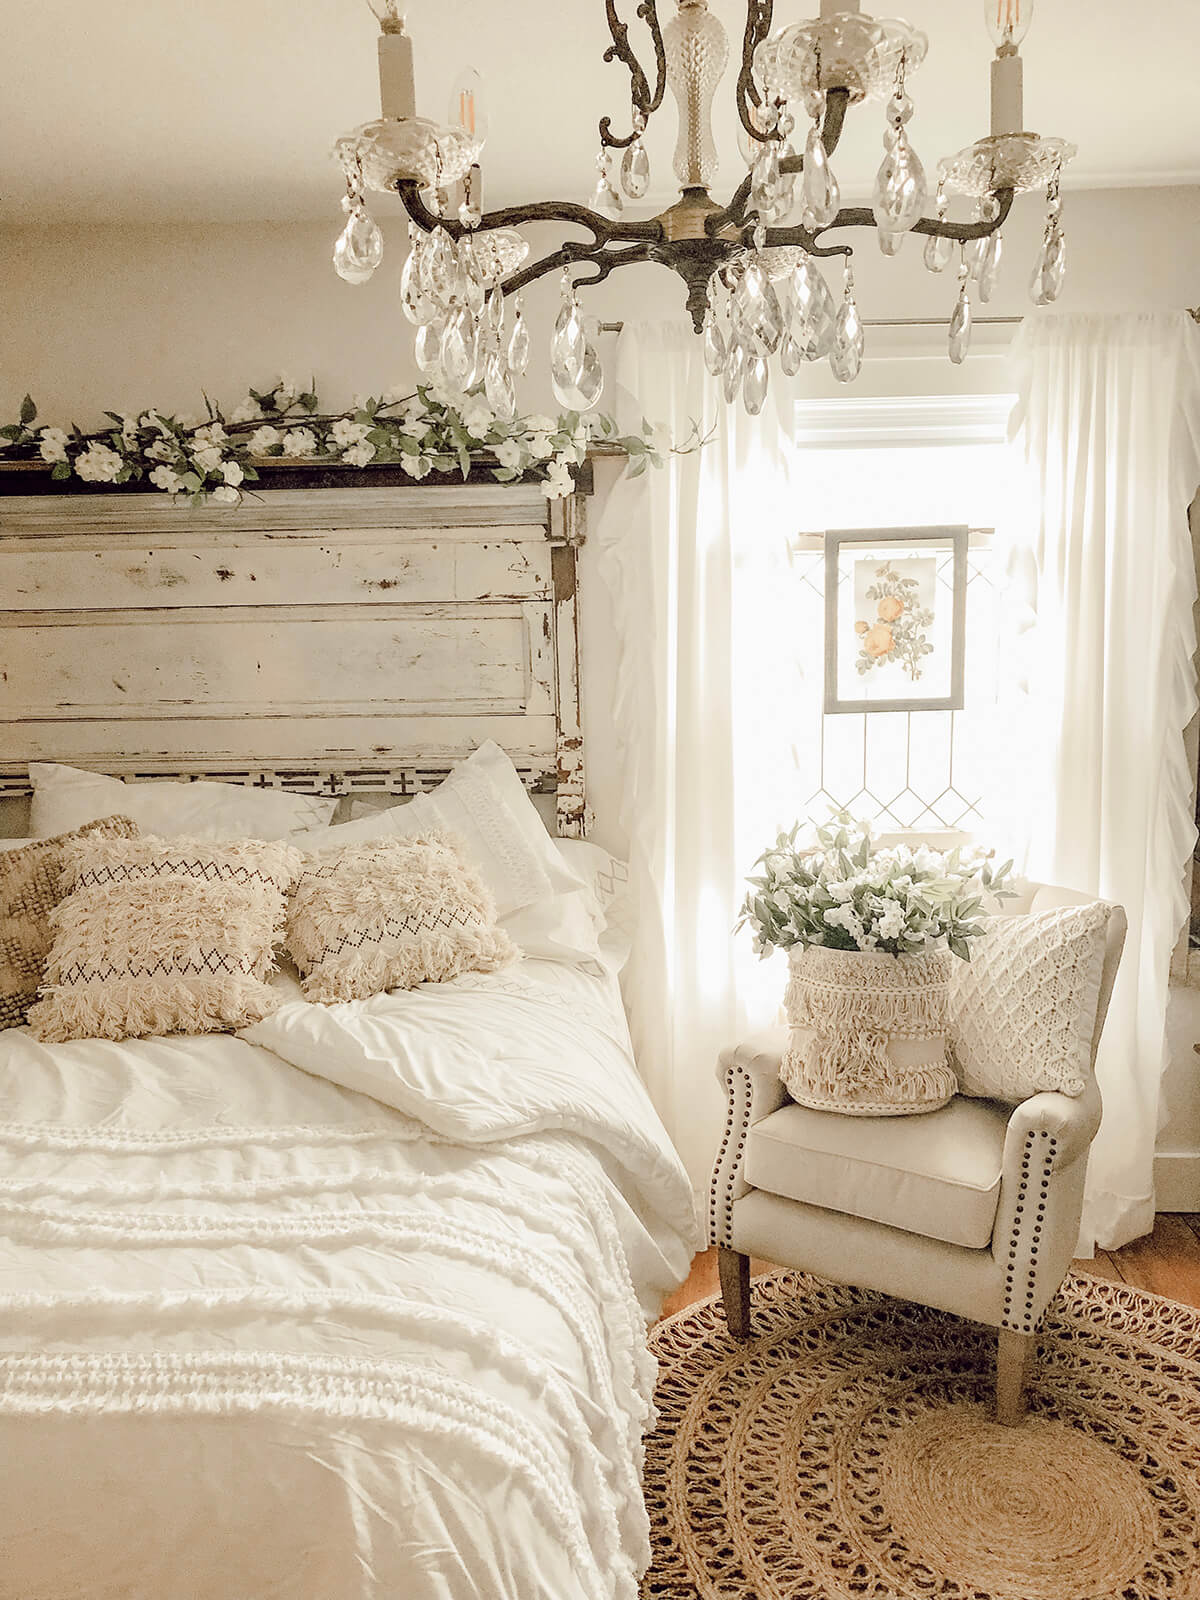 Flowers, Textures, and Sparkle Equal Gorgeous Bedroom